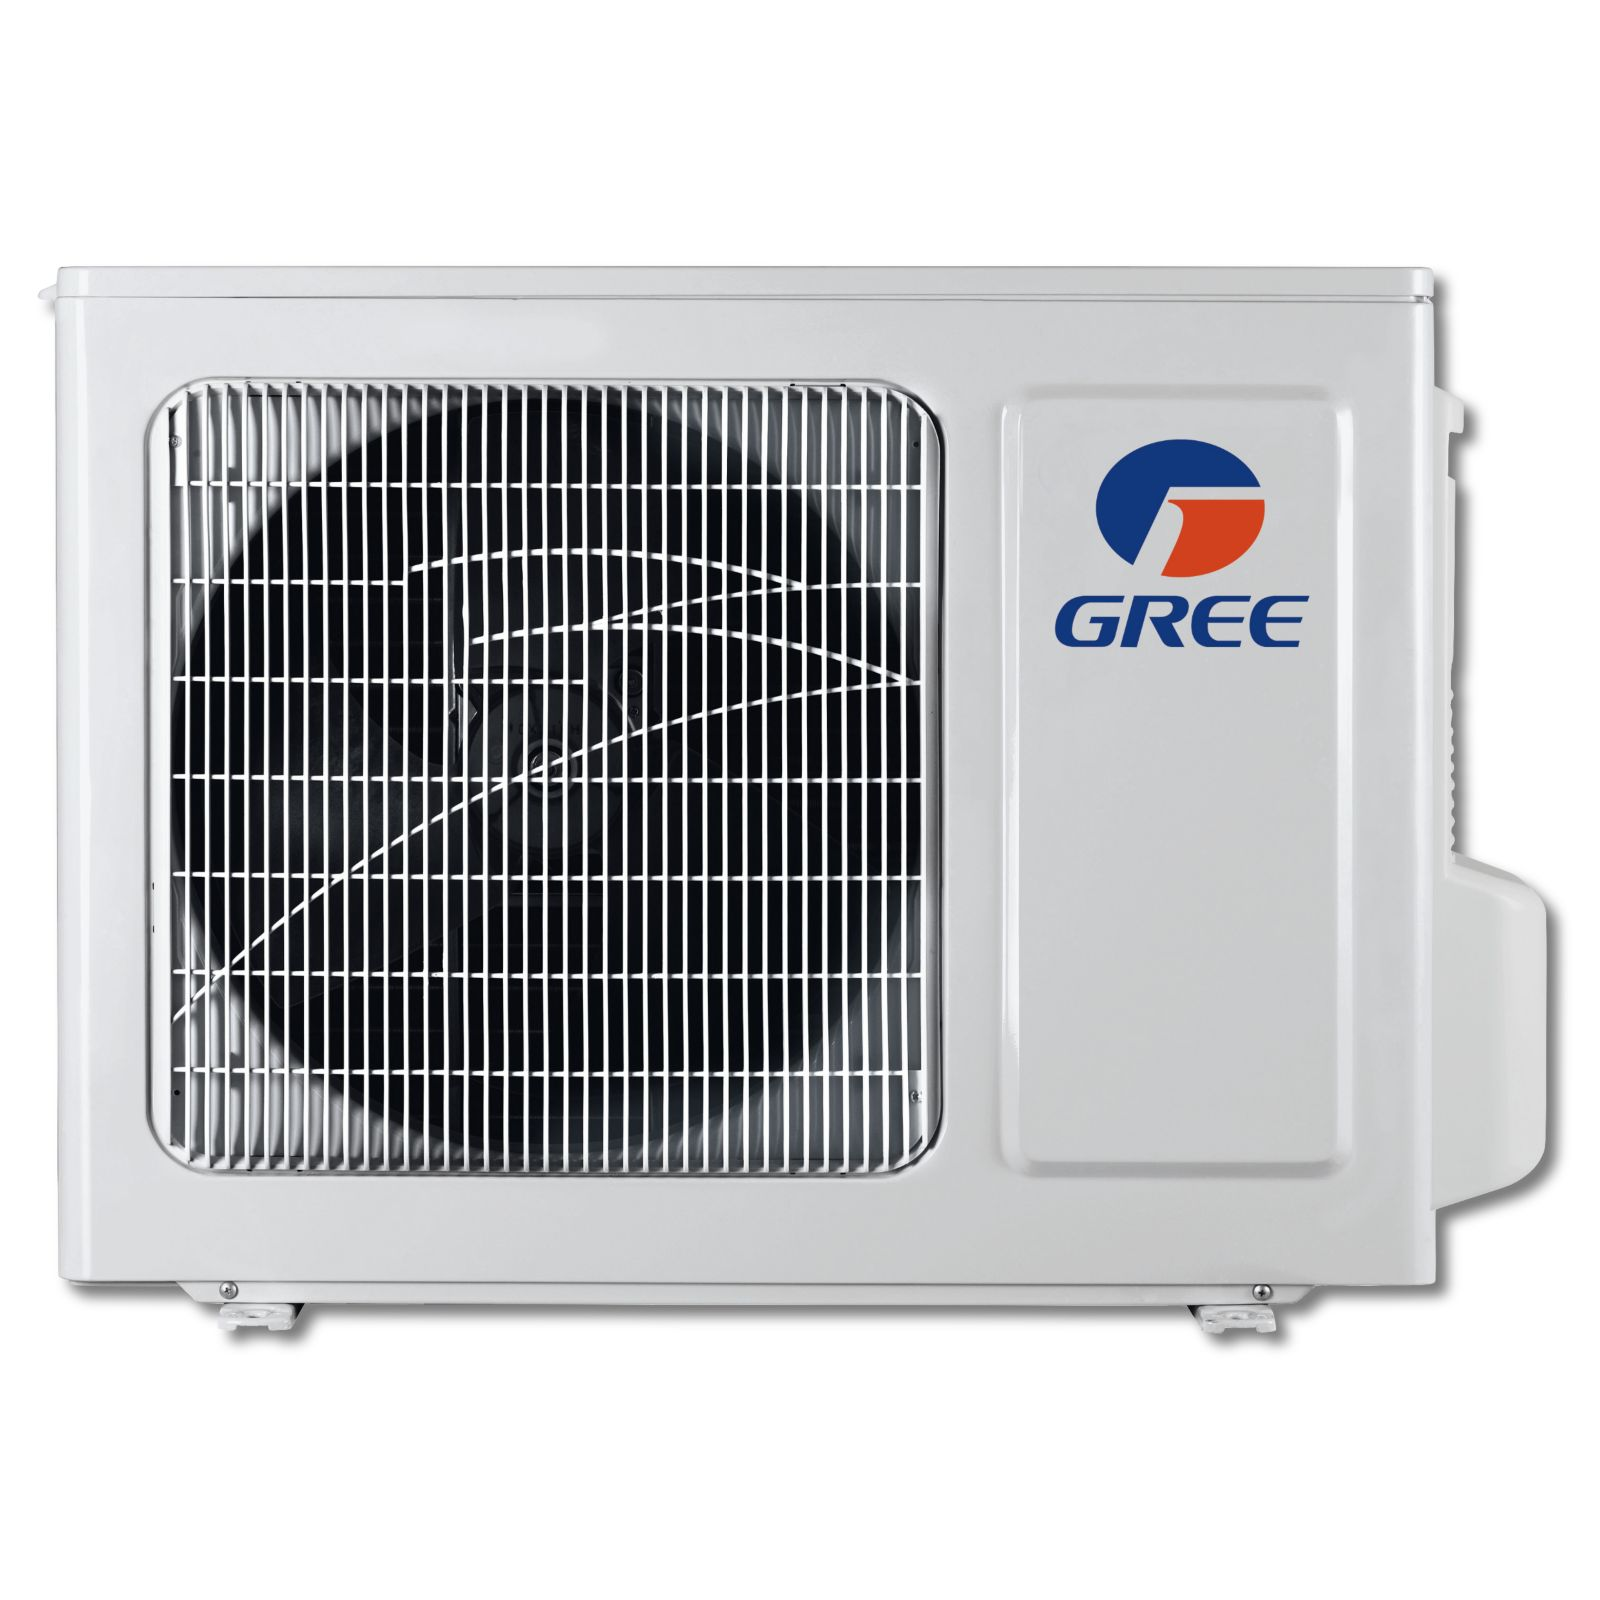 GREE VIR09HP230V1AO - Vireo 9,000 BTU Wall Mounted Inverter Heat Pump Outdoor Unit